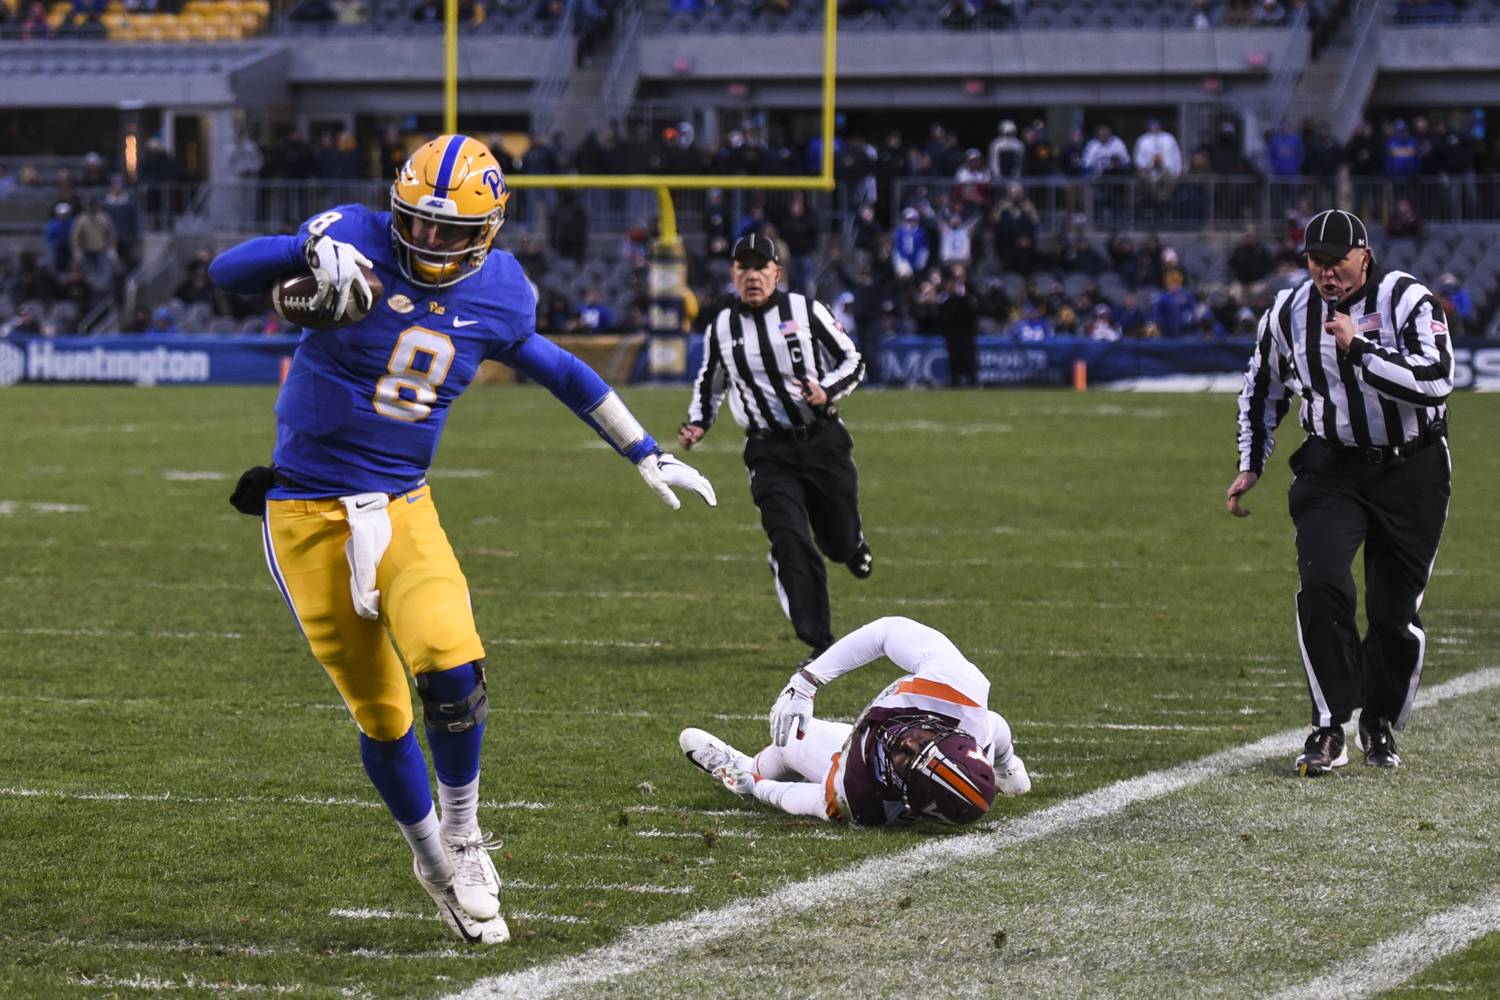 Sophomore quarterback Kenny Pickett, pictured here against Virginia Tech , led all players with 136 passing yards in Pitt's Sun Bowl loss to Stanford.